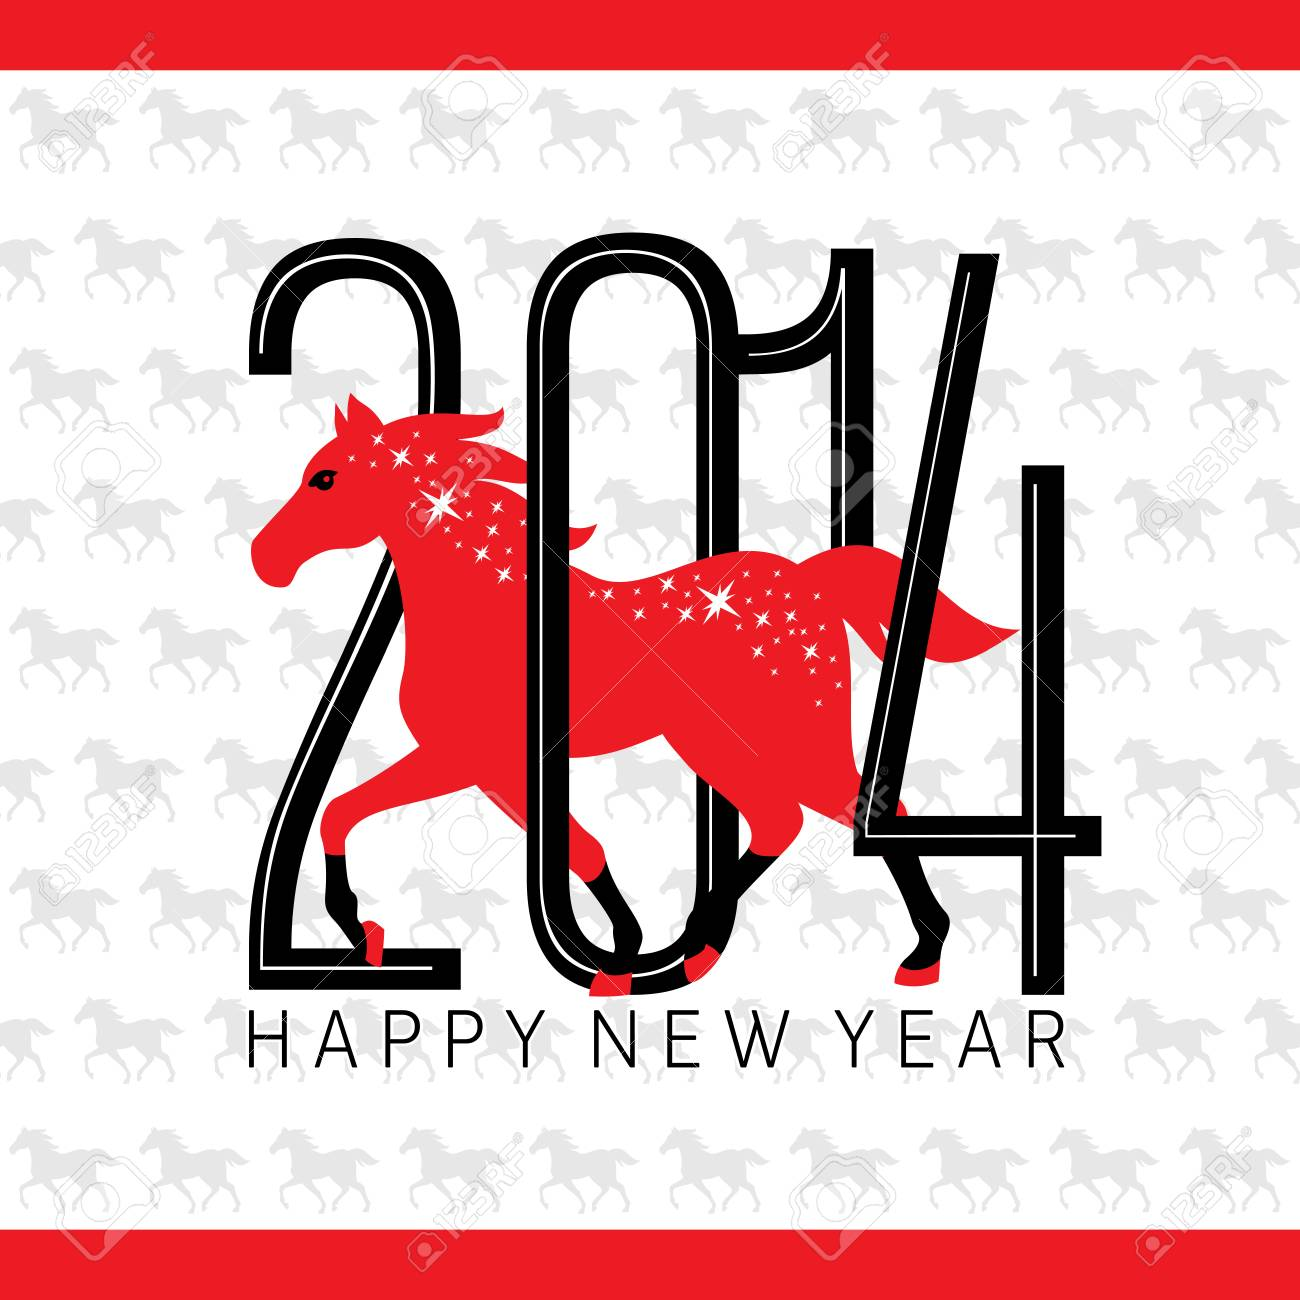 Year of the horse card vector illustration Stock Vector - 23063658